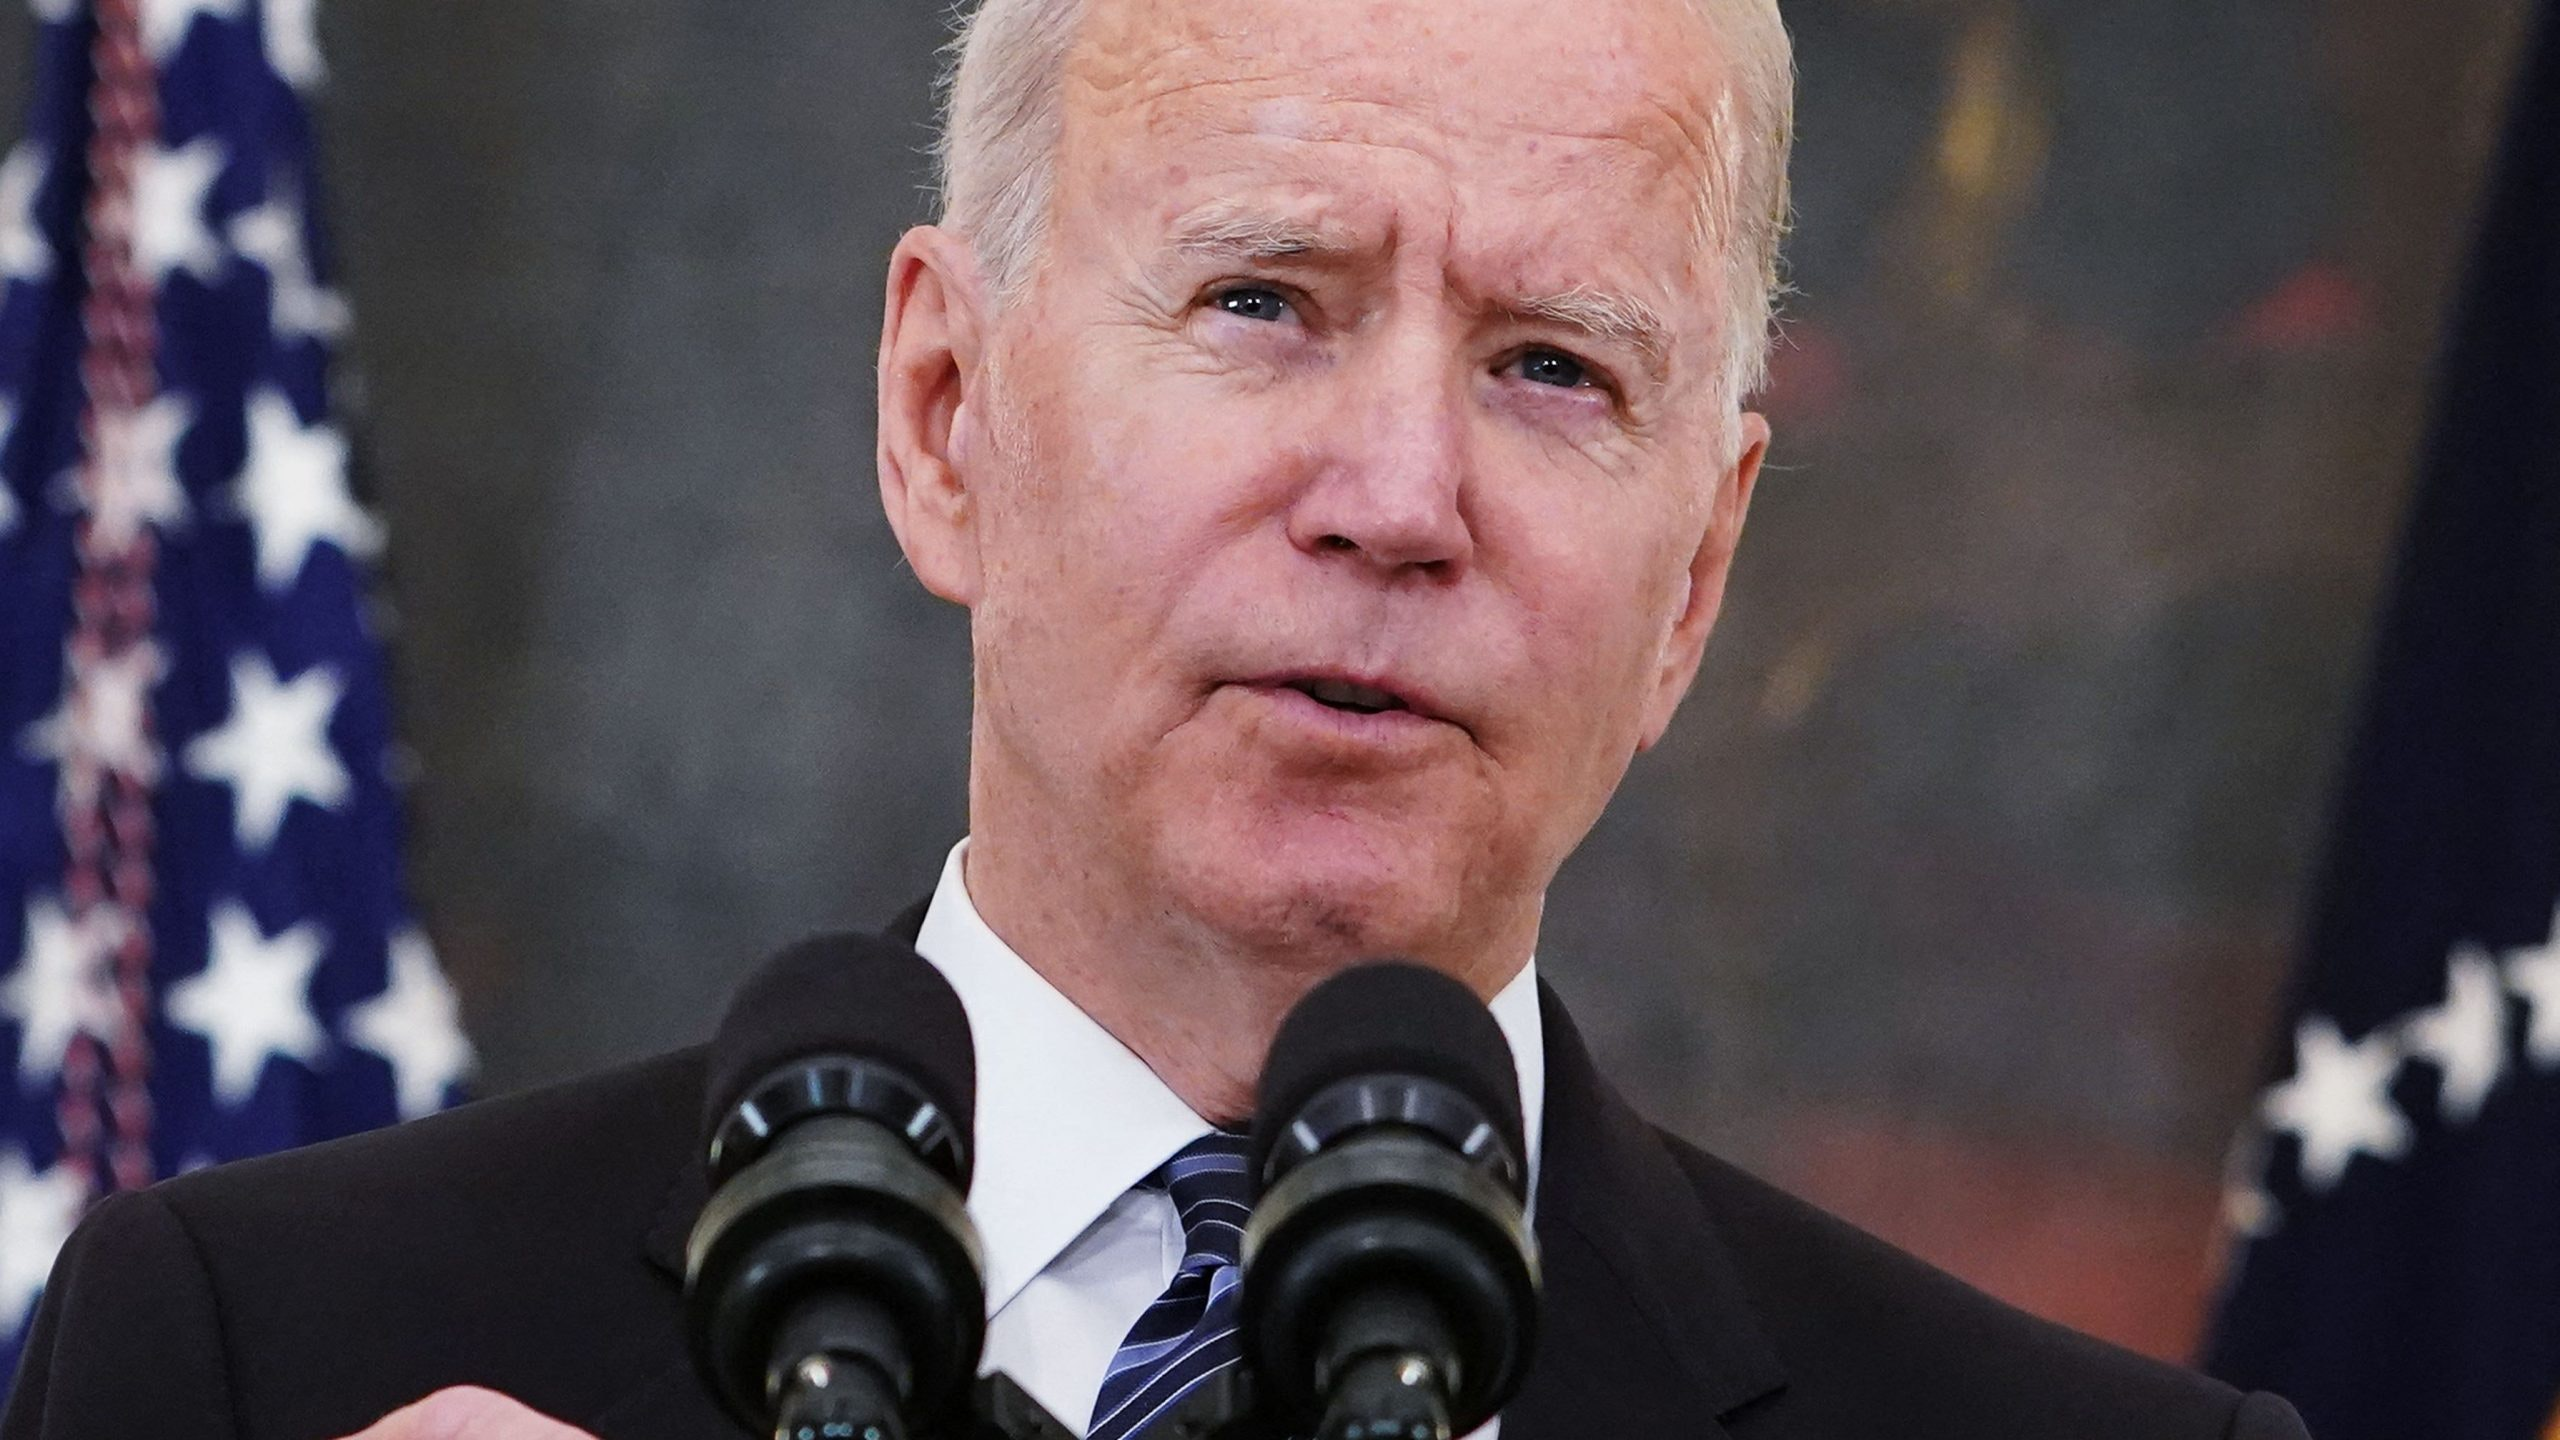 US President Joe Biden speaks about crime prevention, in the State Dining Room of the White House in Washington, DC on June 23, 2021. - President Biden unveiled new measures Wednesday to tackle gun violence against a backdrop of surging crime that his Republican rivals have seized on for weeks.